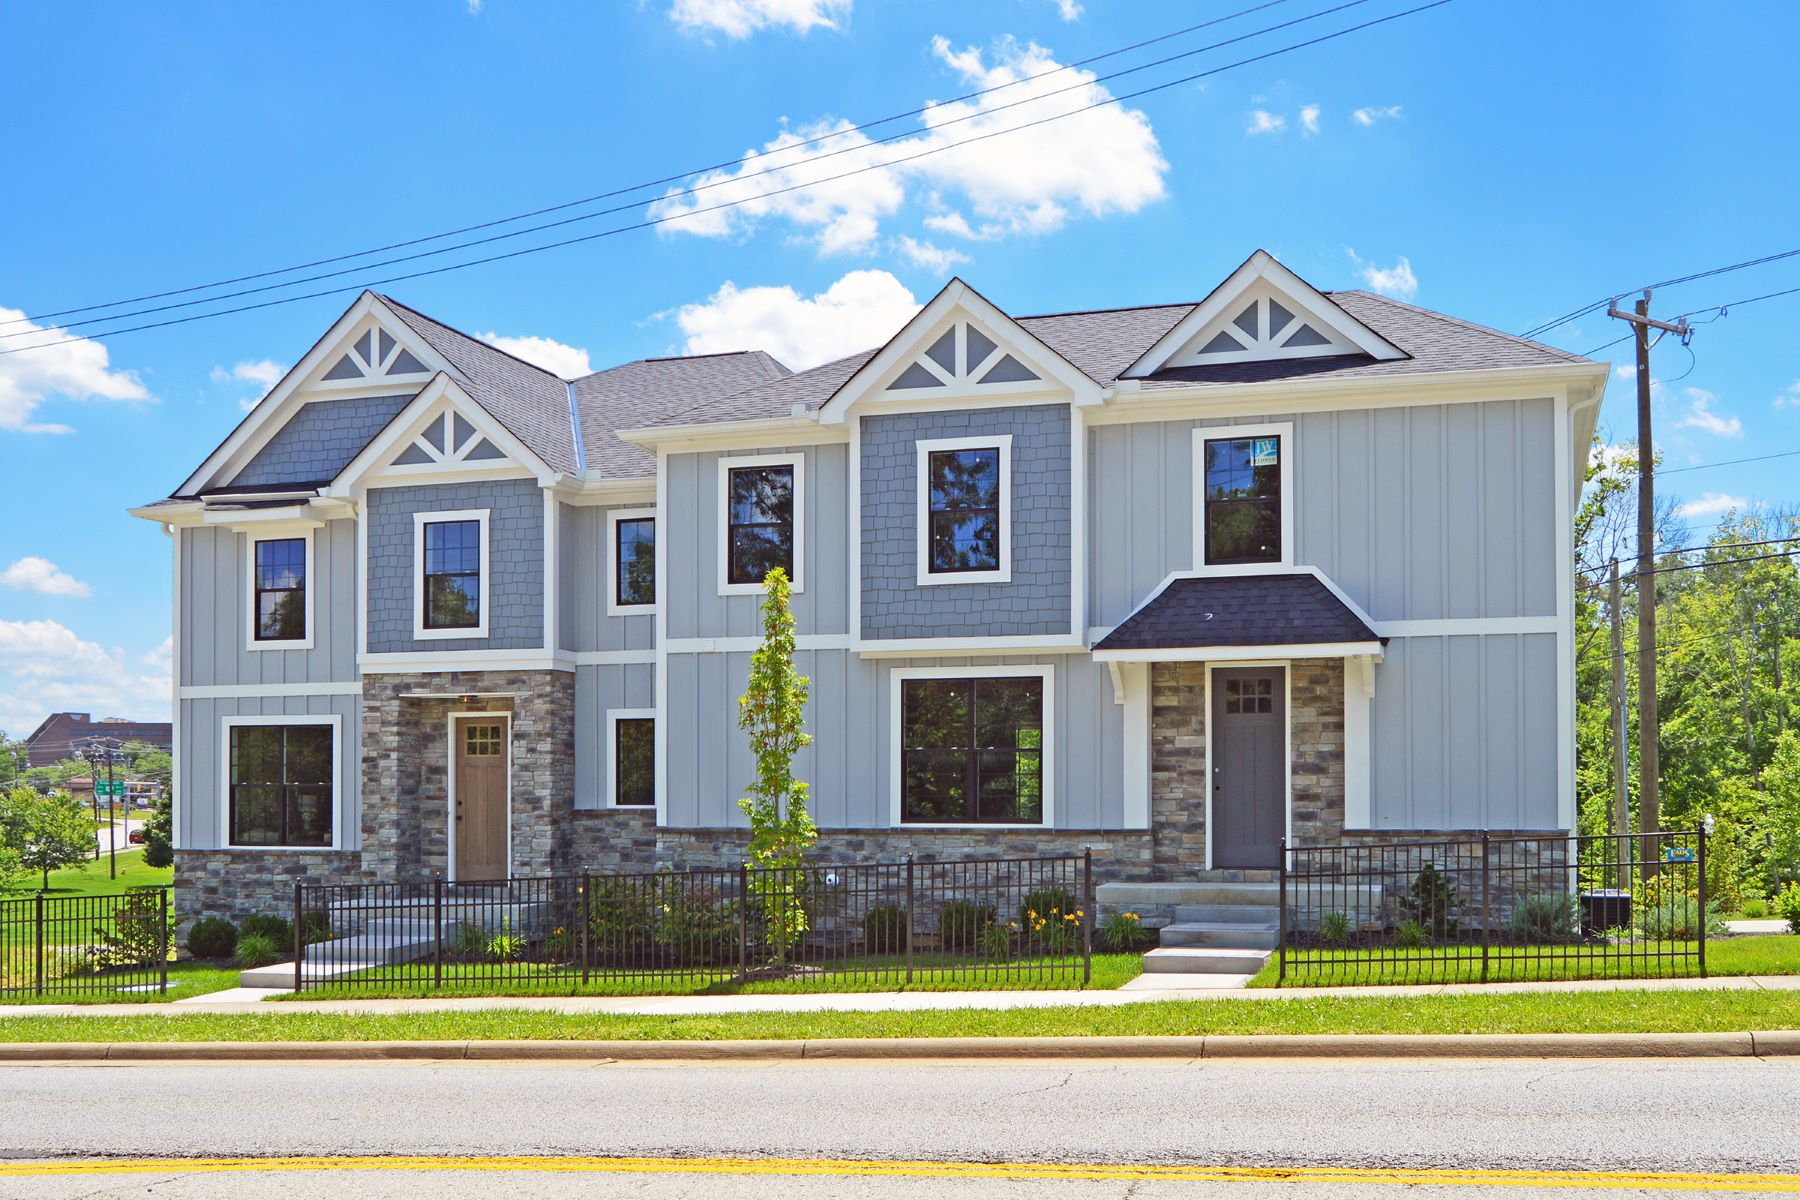 townhouses for Sale at Blue Ash's premiere Lifestyle community built by Cedar Hill Custom Homes 9332 Old Plainfield Rd. Blue Ash, Ohio 45236 United States